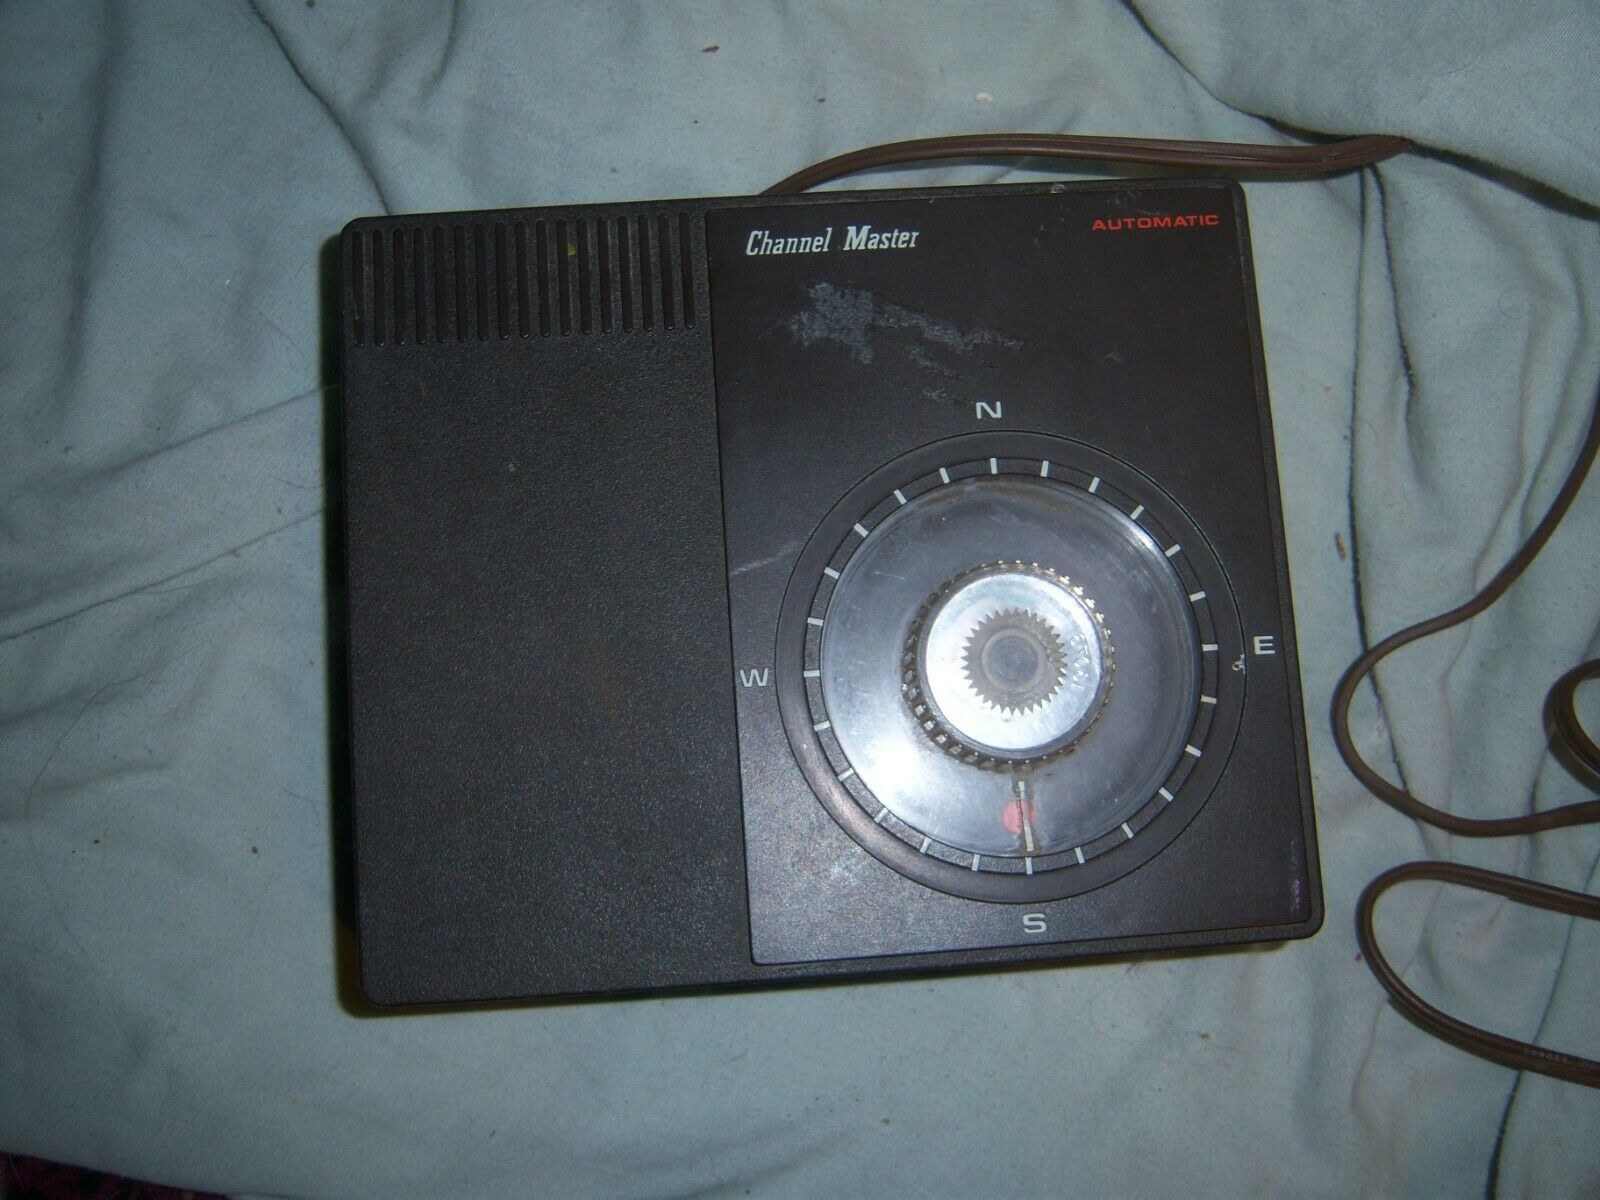 Vintage Channel Master Automatic Antenna Rotator Controller Model 9510 3 Wire For Sale Online